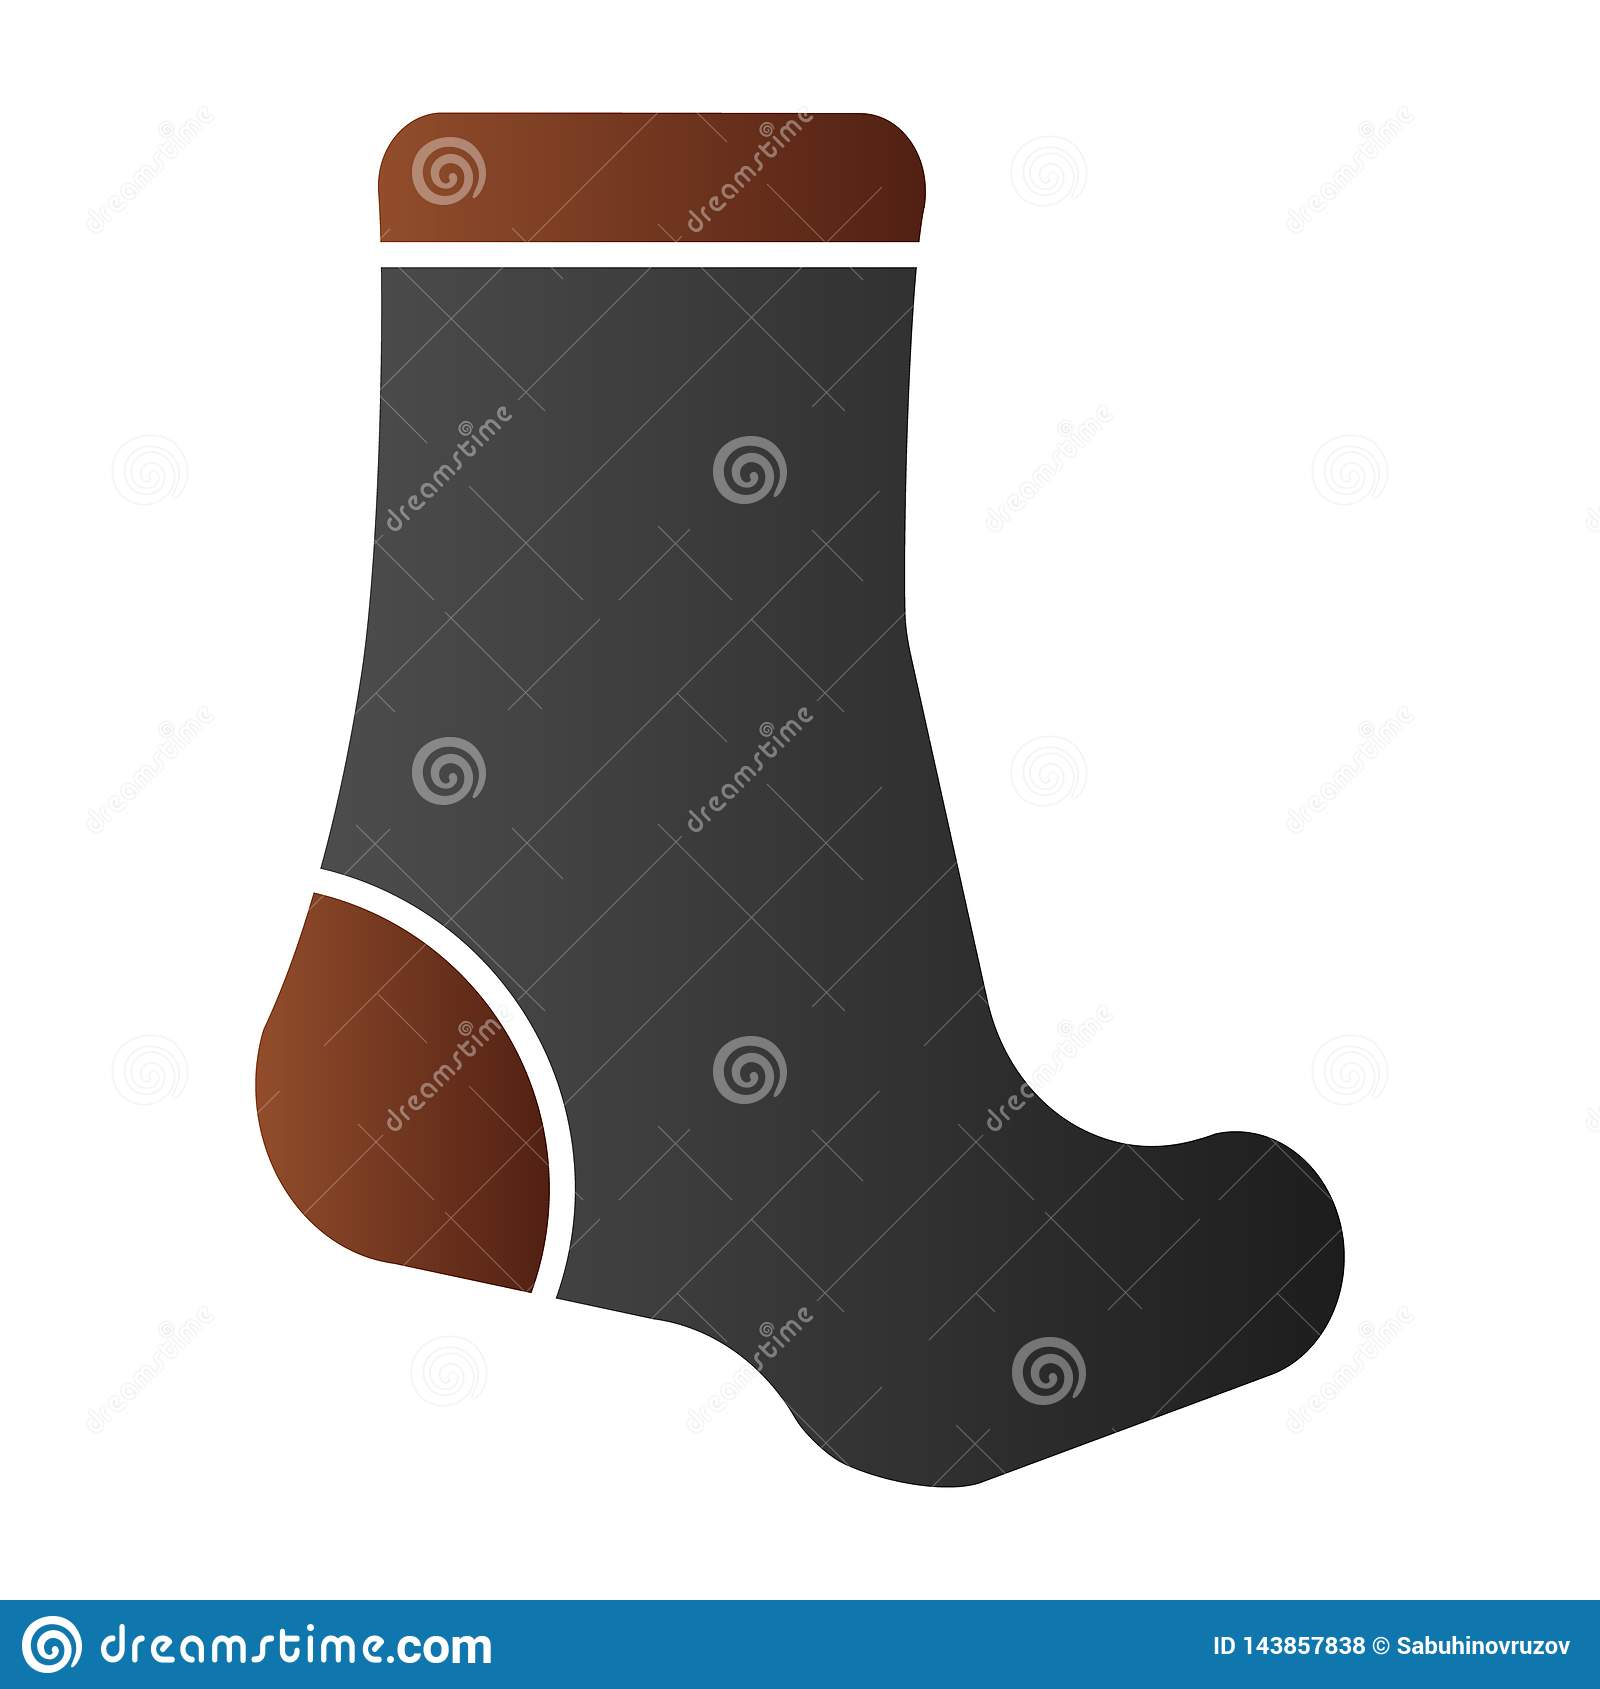 Sock Flat Icon  Textile Clothing Color Icons In Trendy Flat